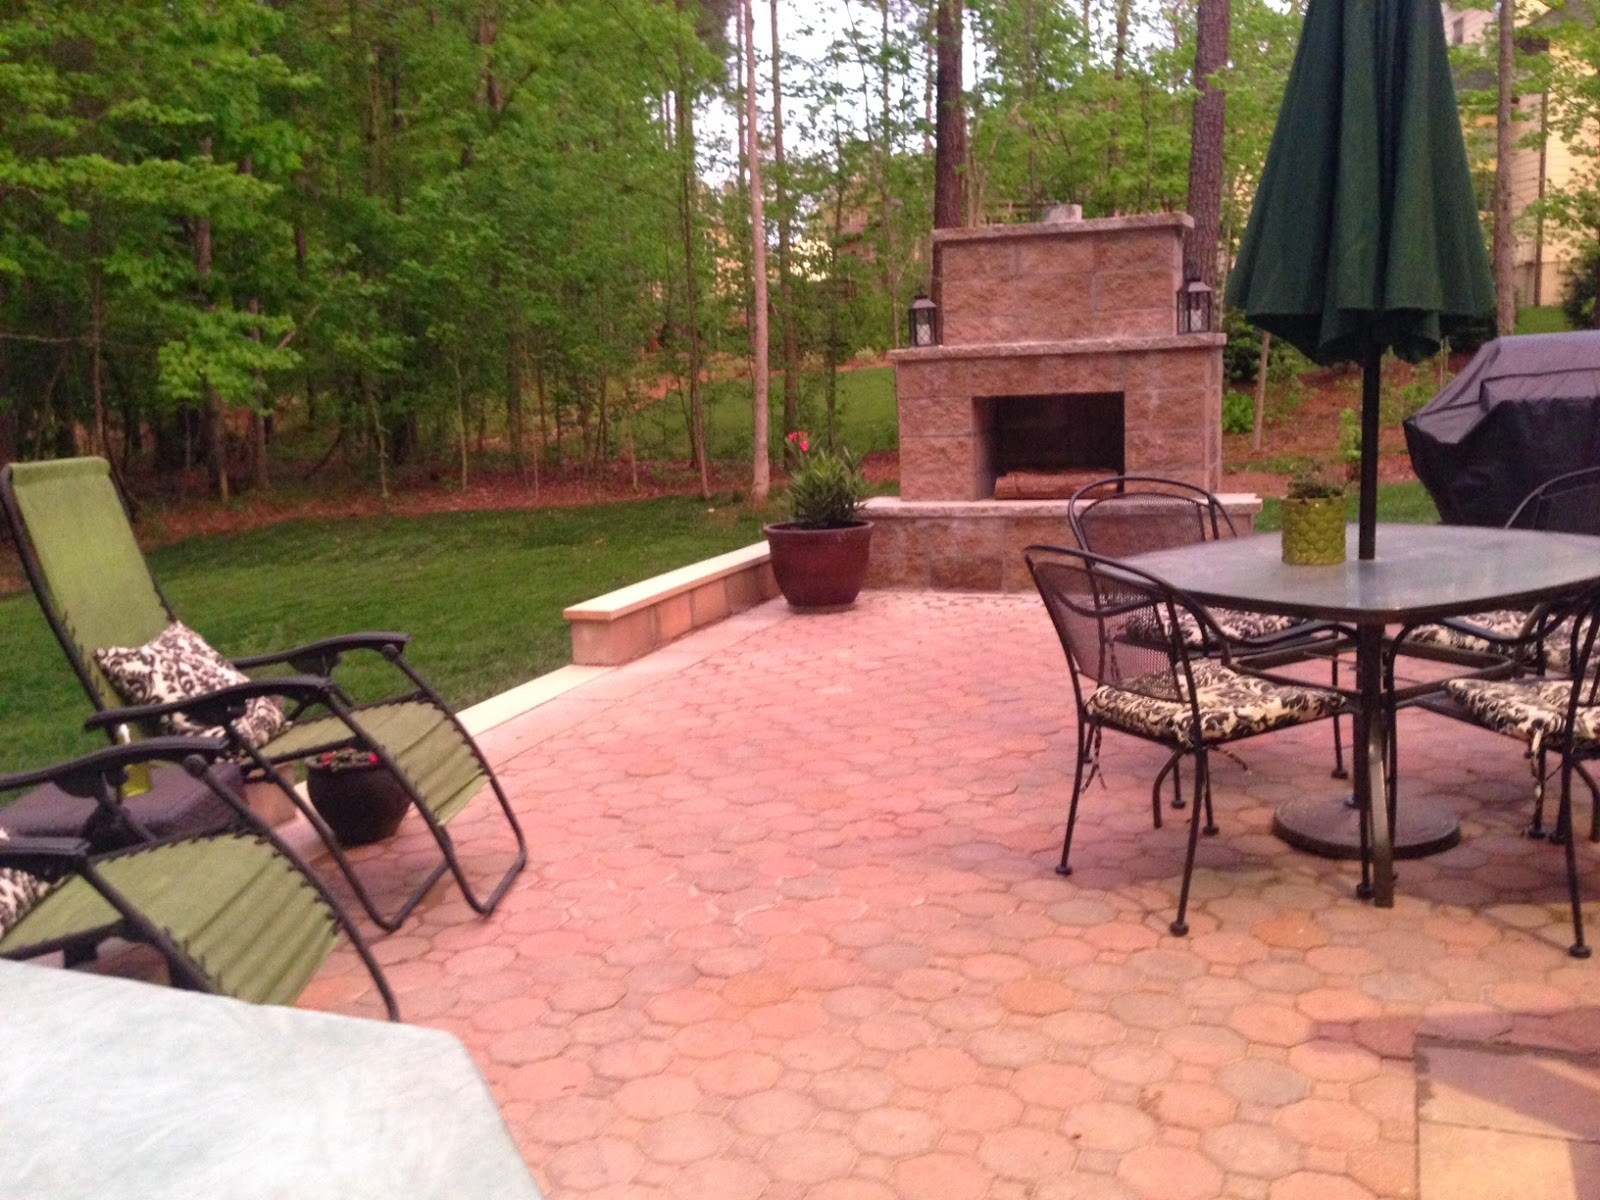 Best ideas about DIY Outdoor Patios . Save or Pin Life in the Barbie Dream House DIY Paver Patio and Now.